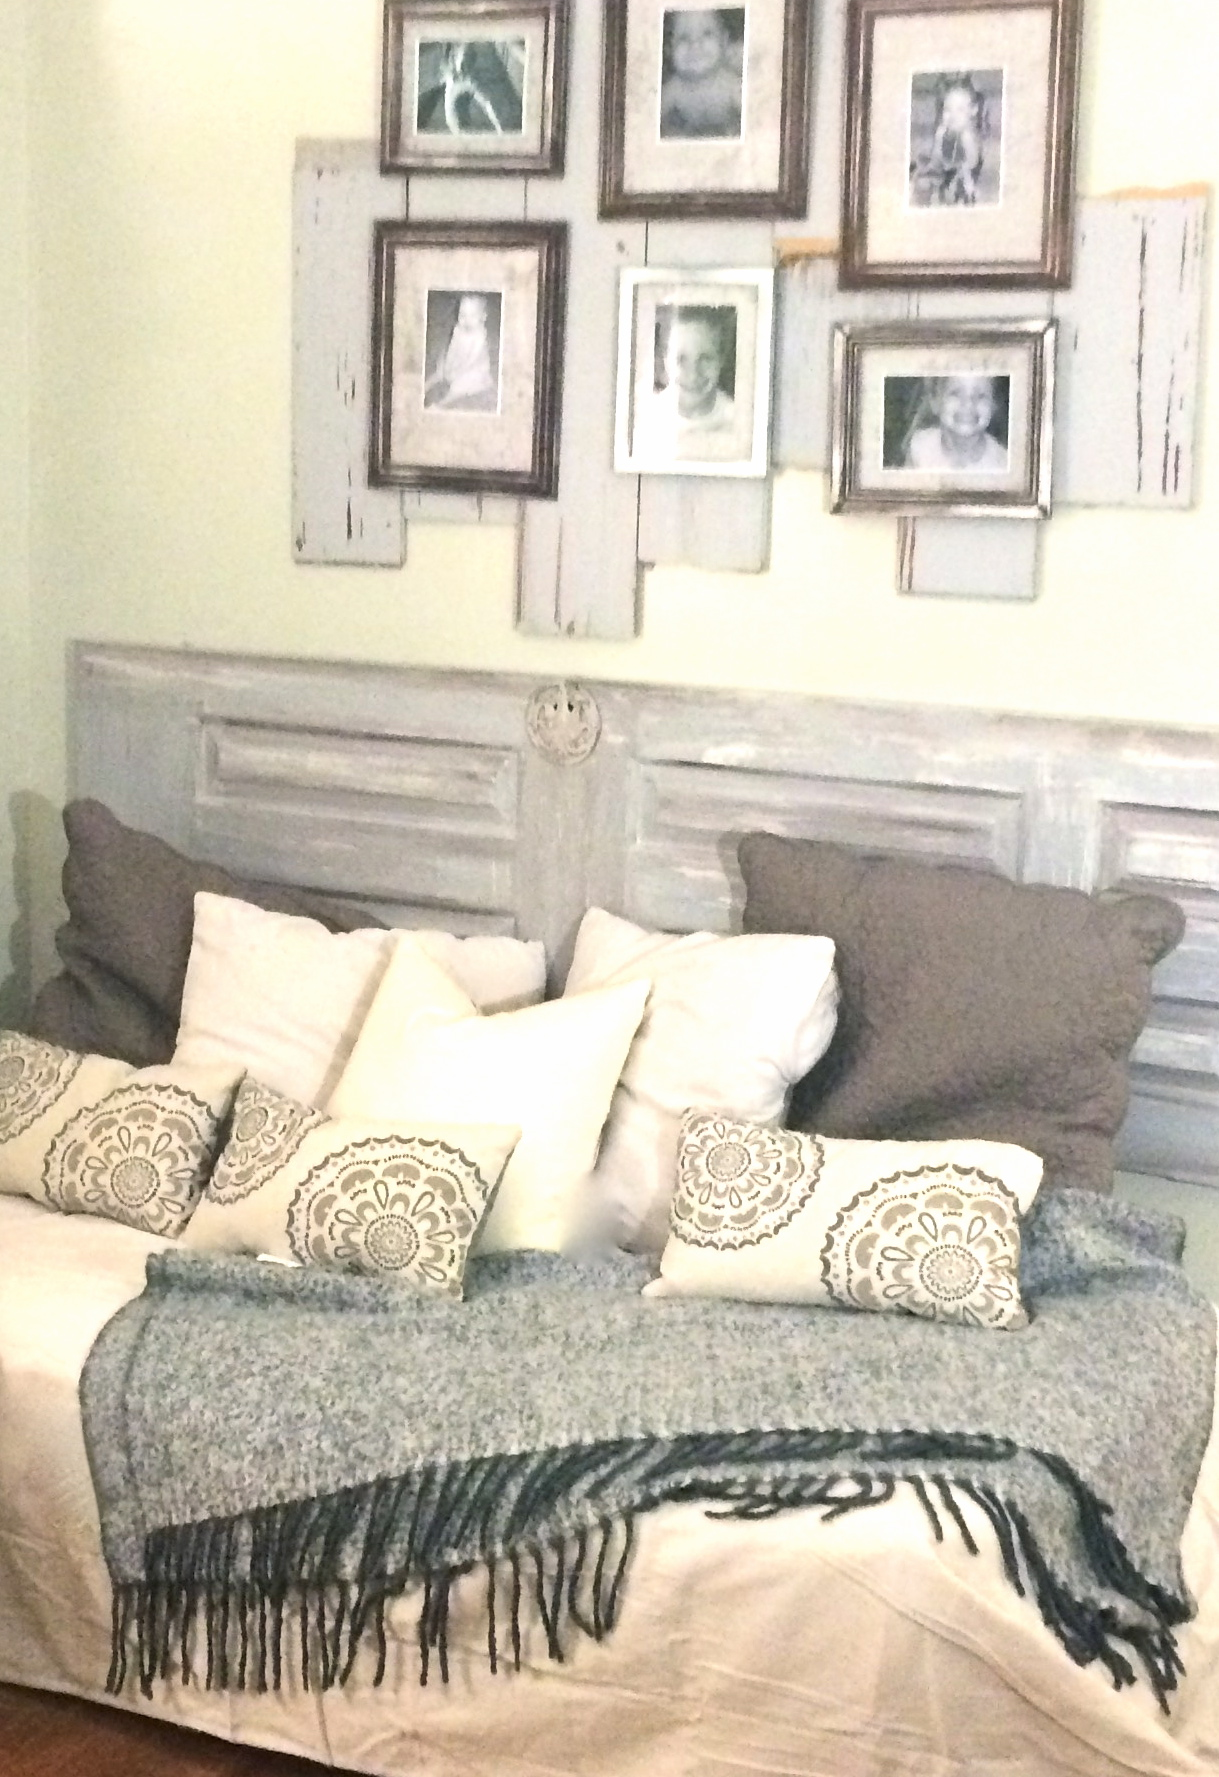 I wanted to hang a collage of pictures over the pallet bed/sofa. When I started with just hanging the frames it felt kinda blah. & A-DOOR-able Pallet Couch u2013 A Will and a DIY Way